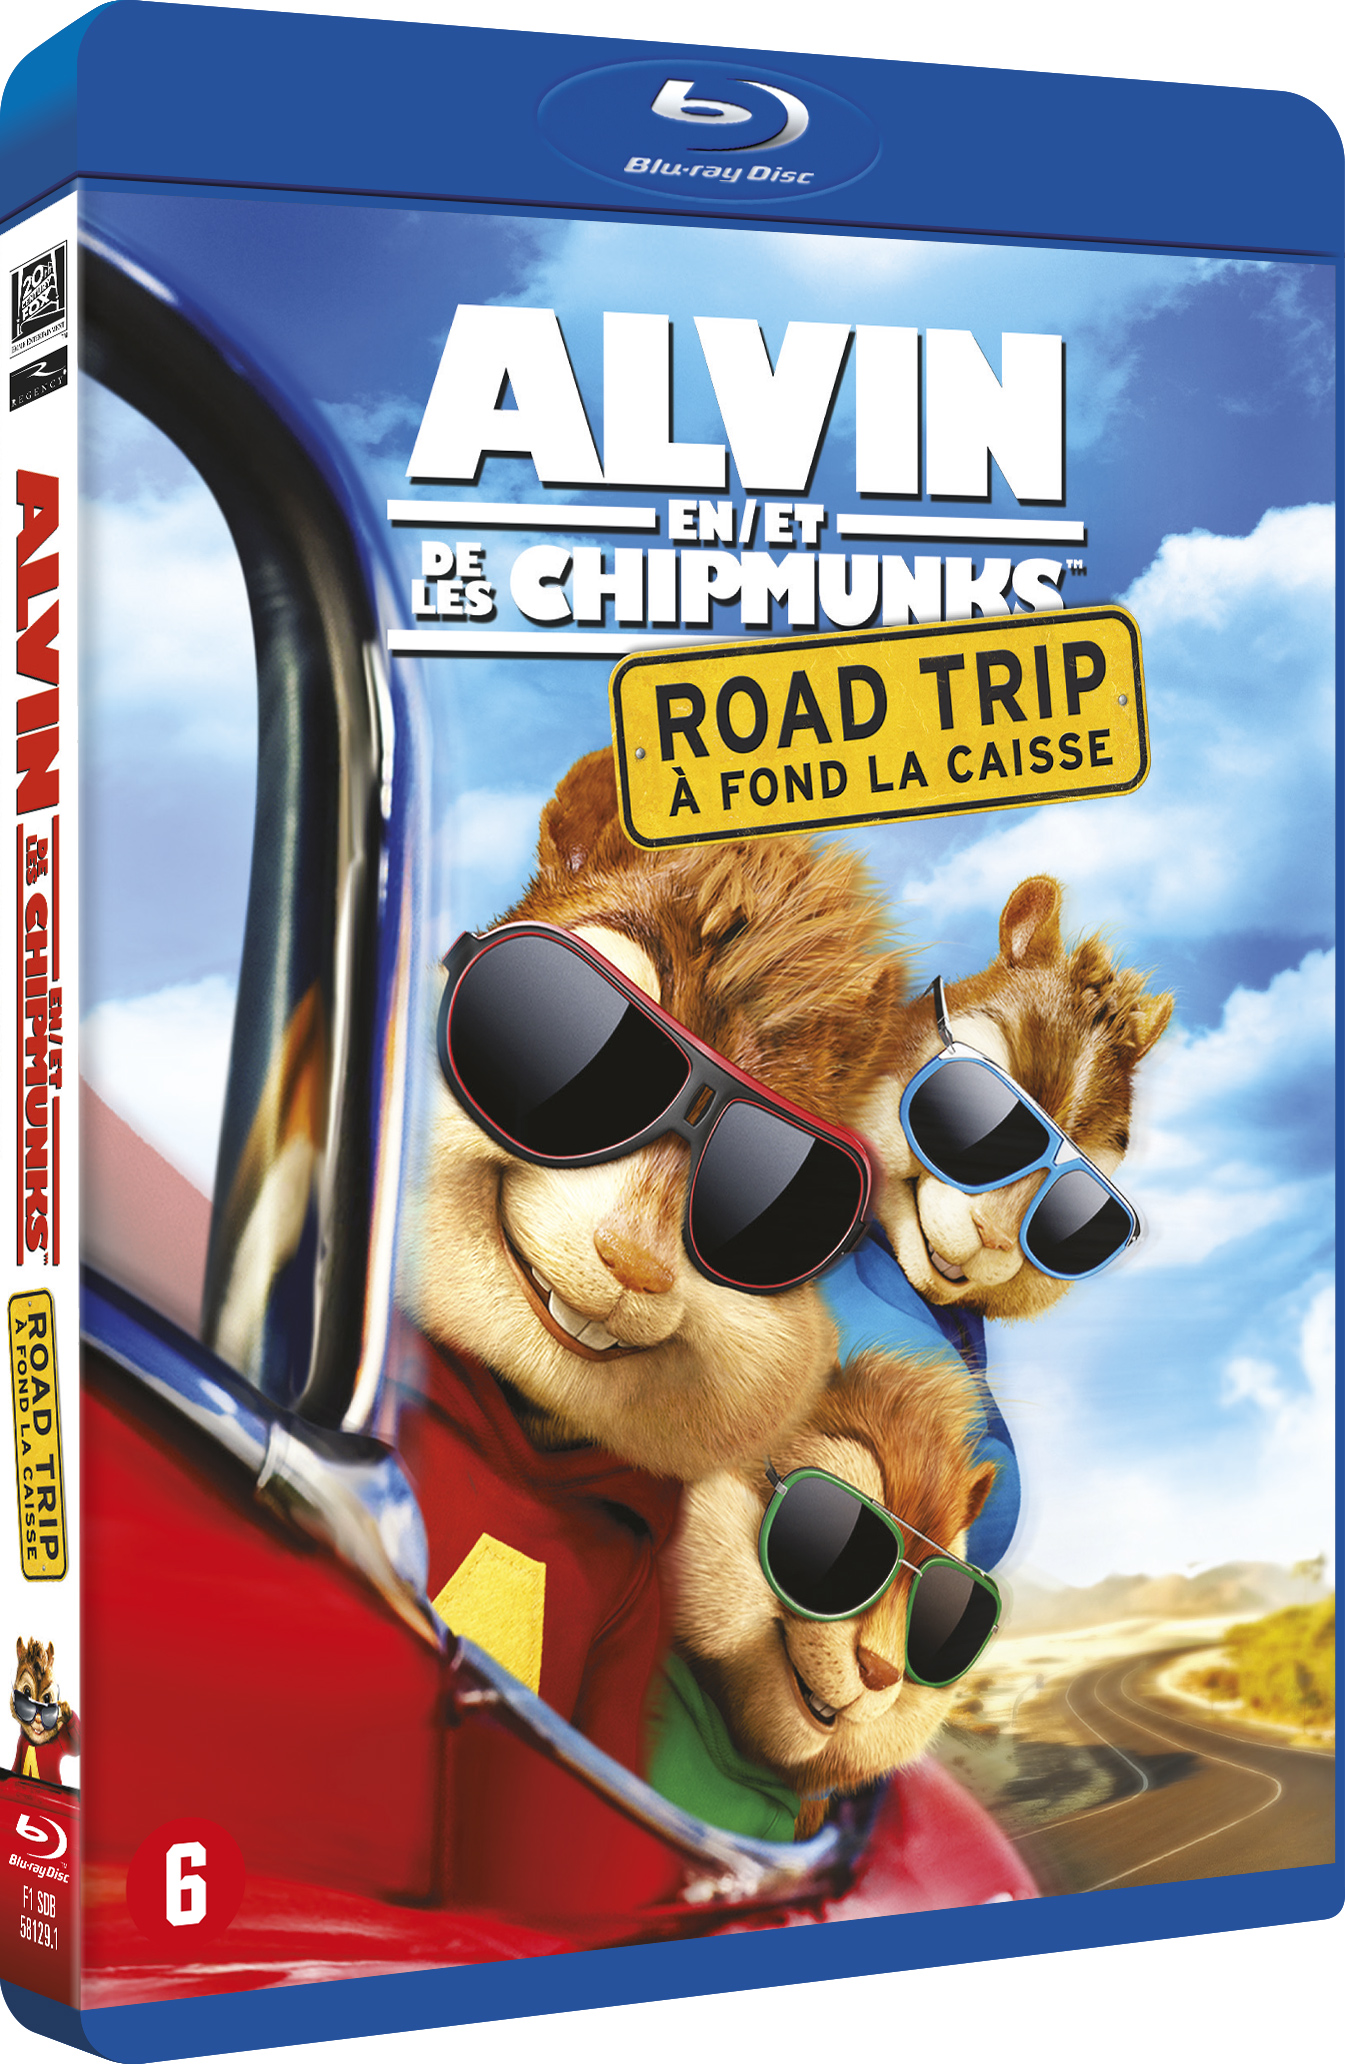 Alvin en de Chipmunks: Road Trip - BD